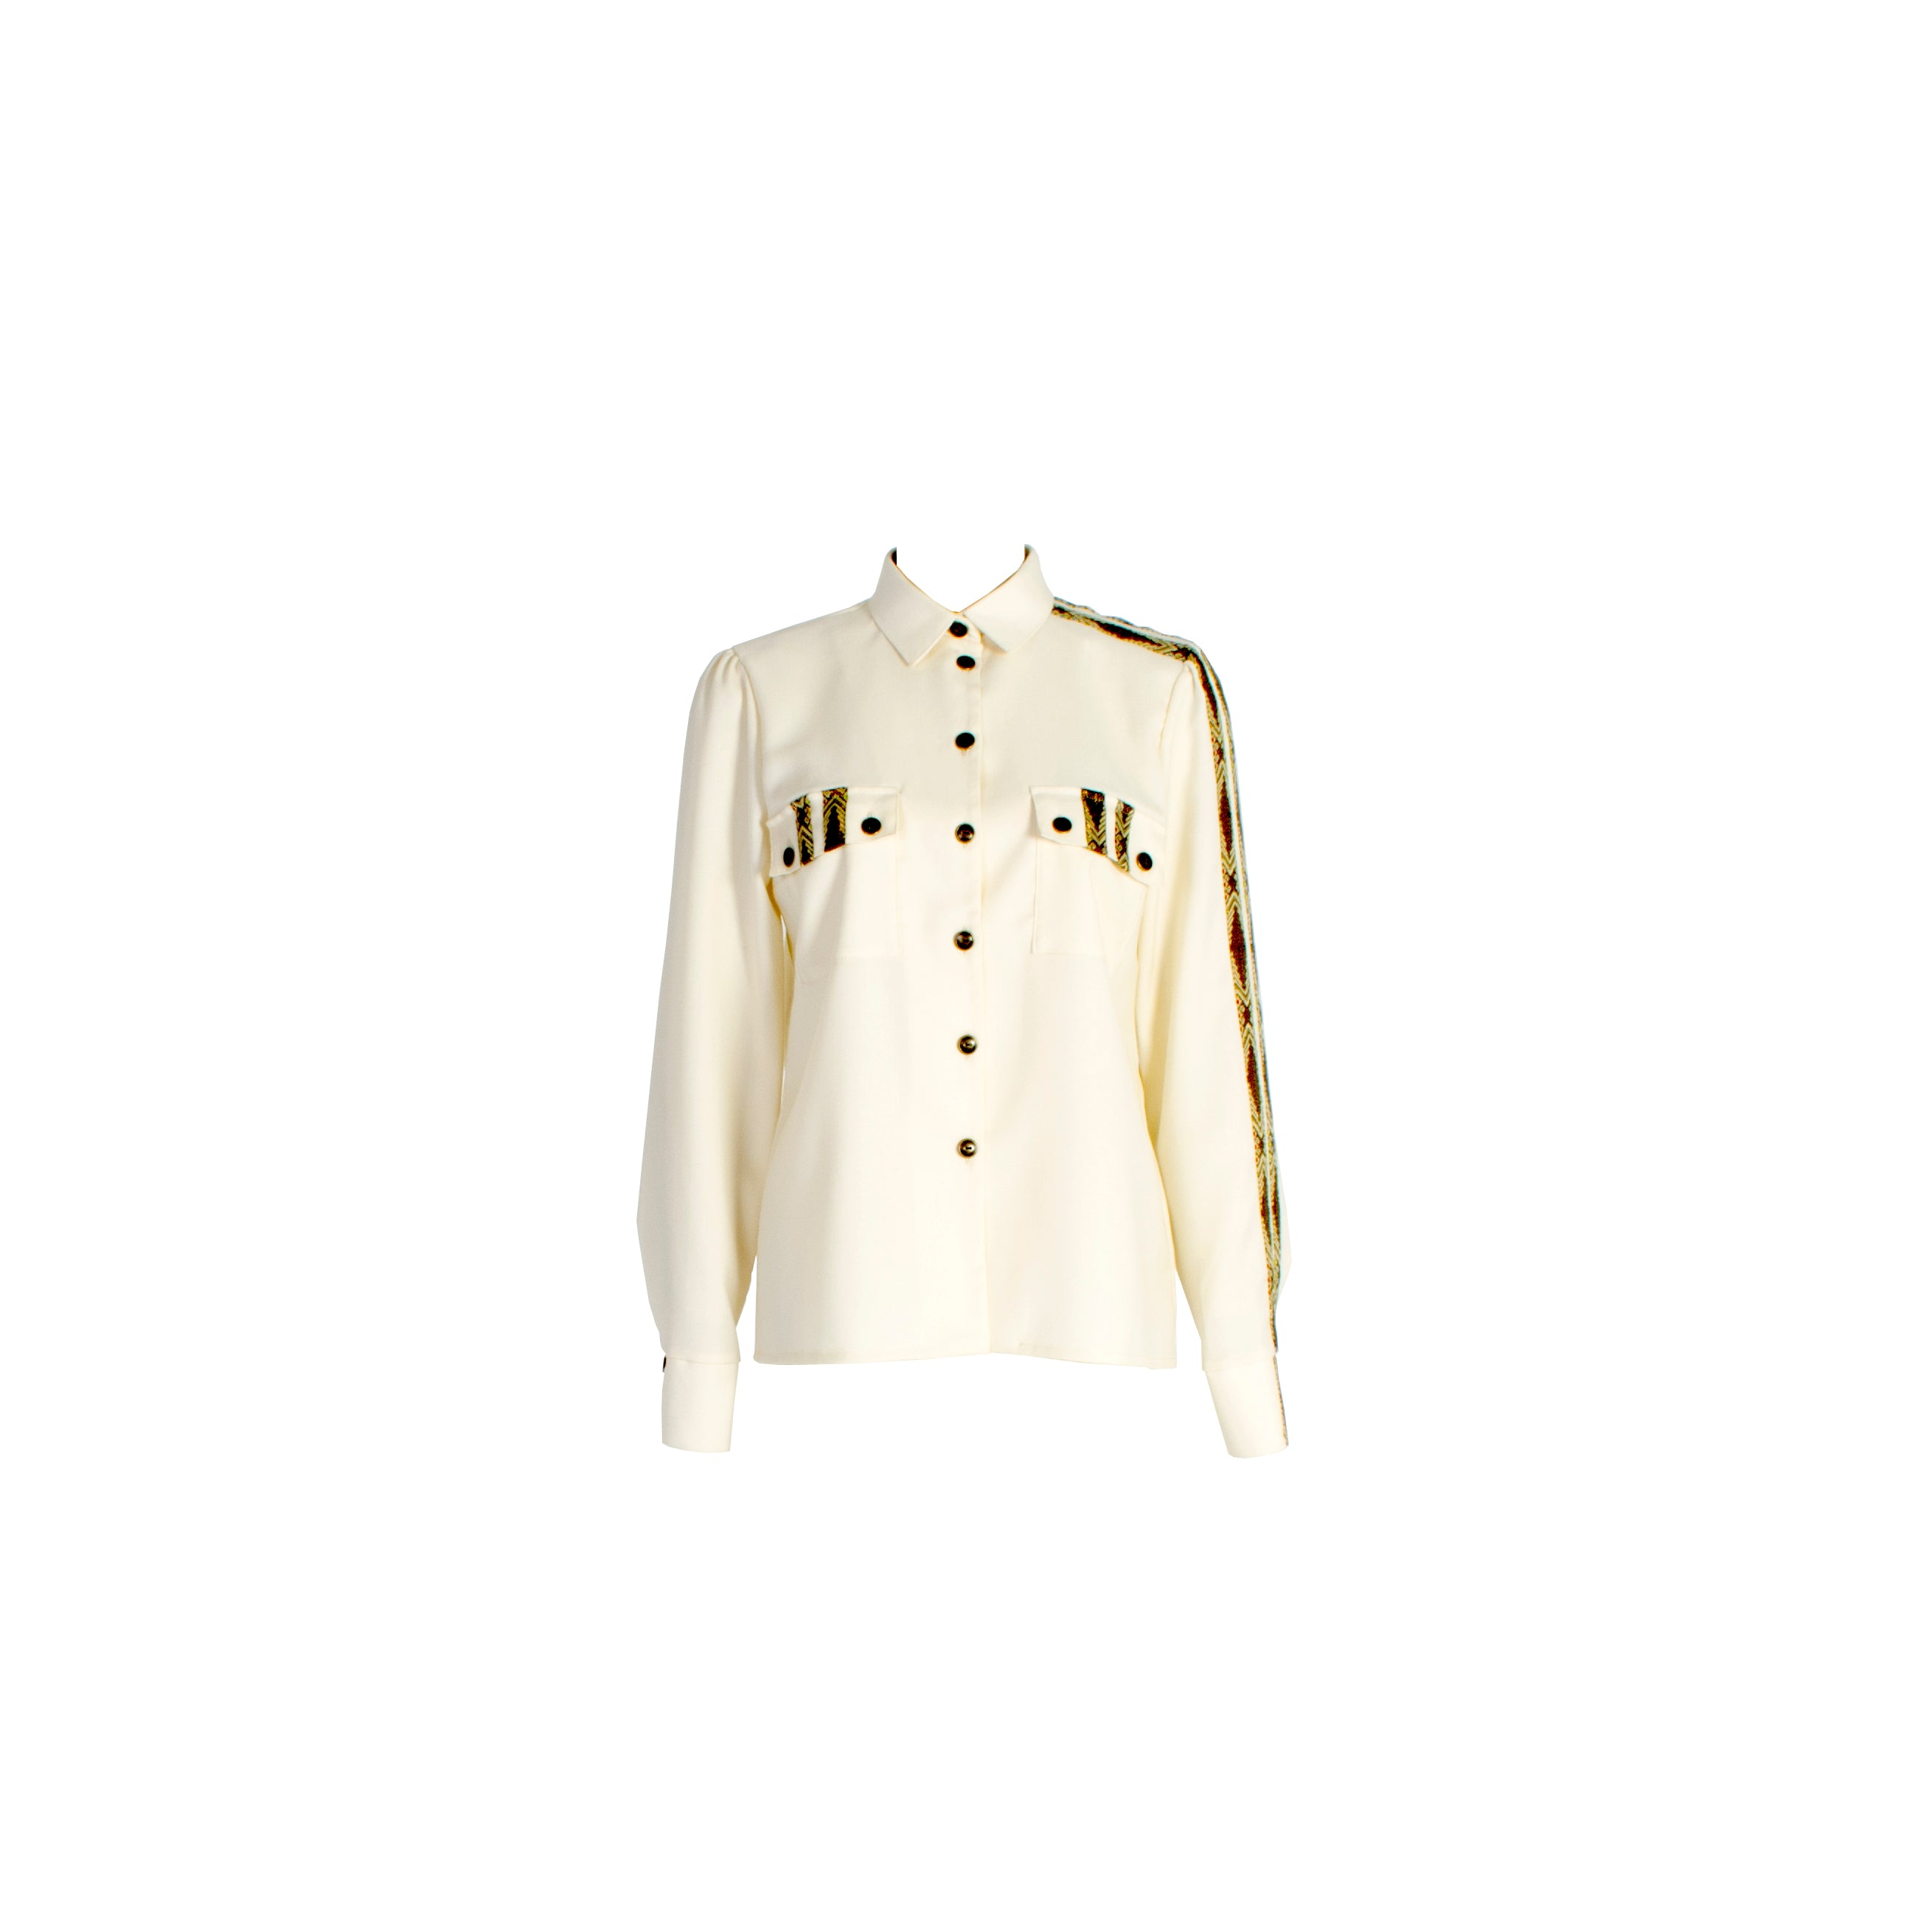 Long Sleeve Wool Button Up Shirt with Chest Pockets White